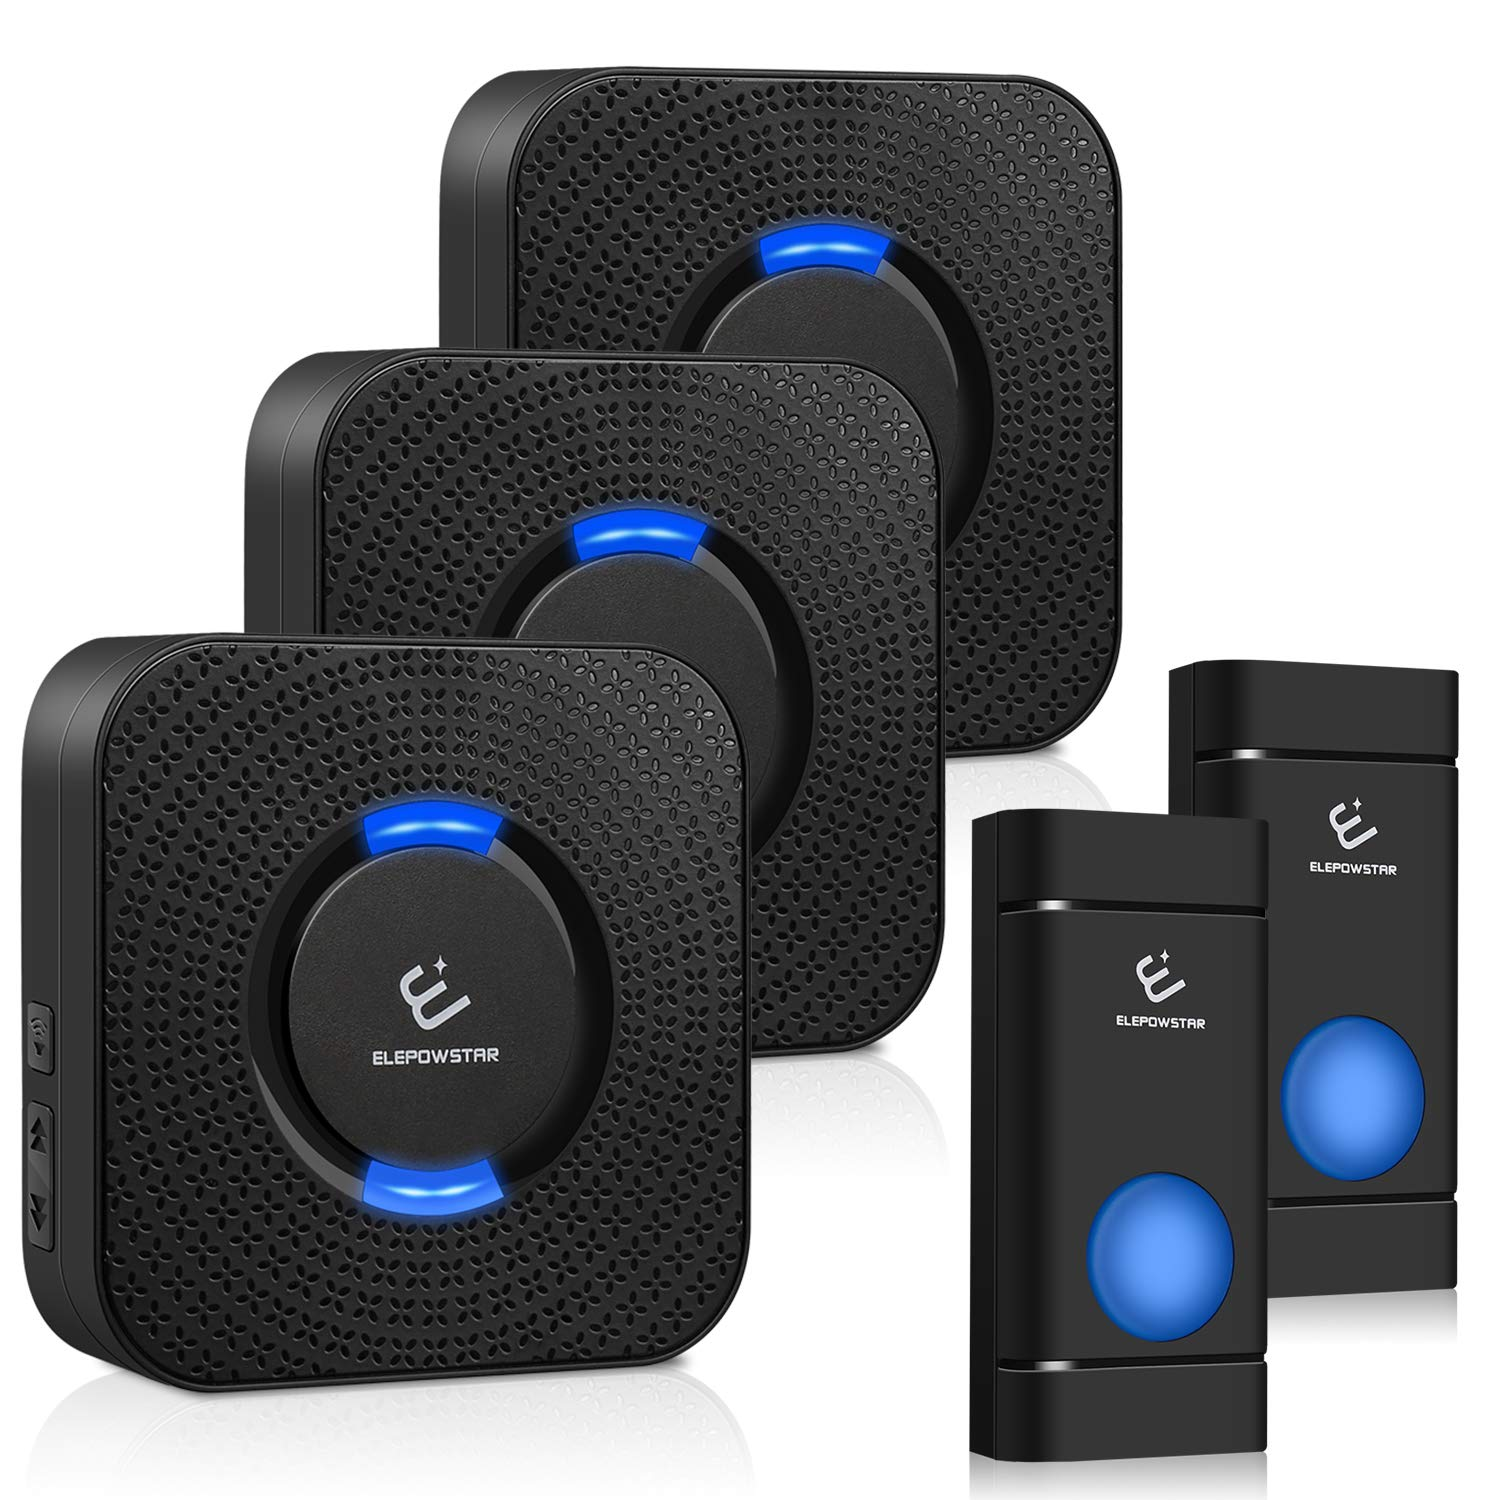 Waterproof Wireless Doorbell kit, ELEPOWSTAR Door Bell Alarm with 1000 feet Operating Range, Door Chime Alarm with 4 Volume Levels, 52 Melodies Chimes, Black (2 Buttons + 3 Plugin Receivers)